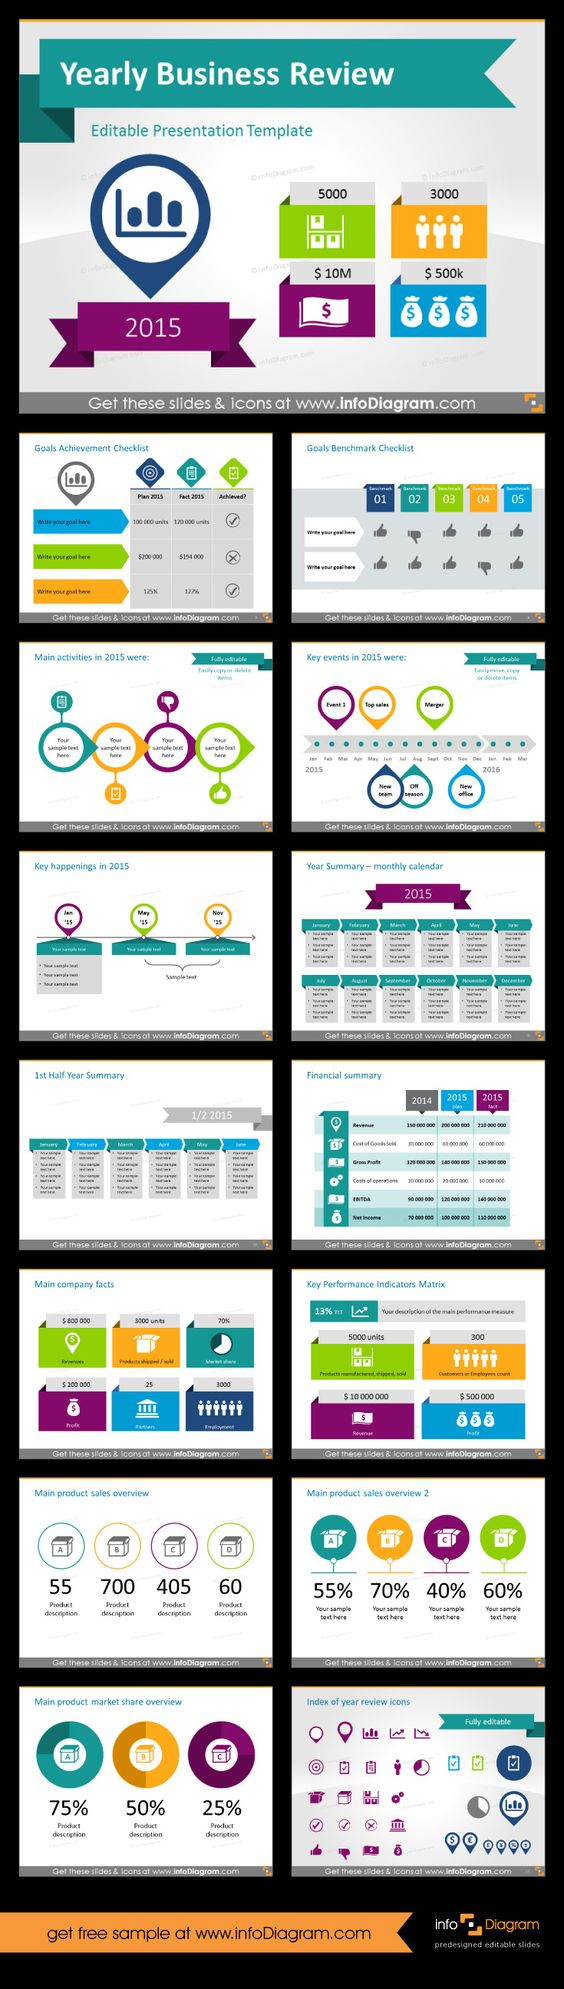 End of Year Business Review presentation template. For